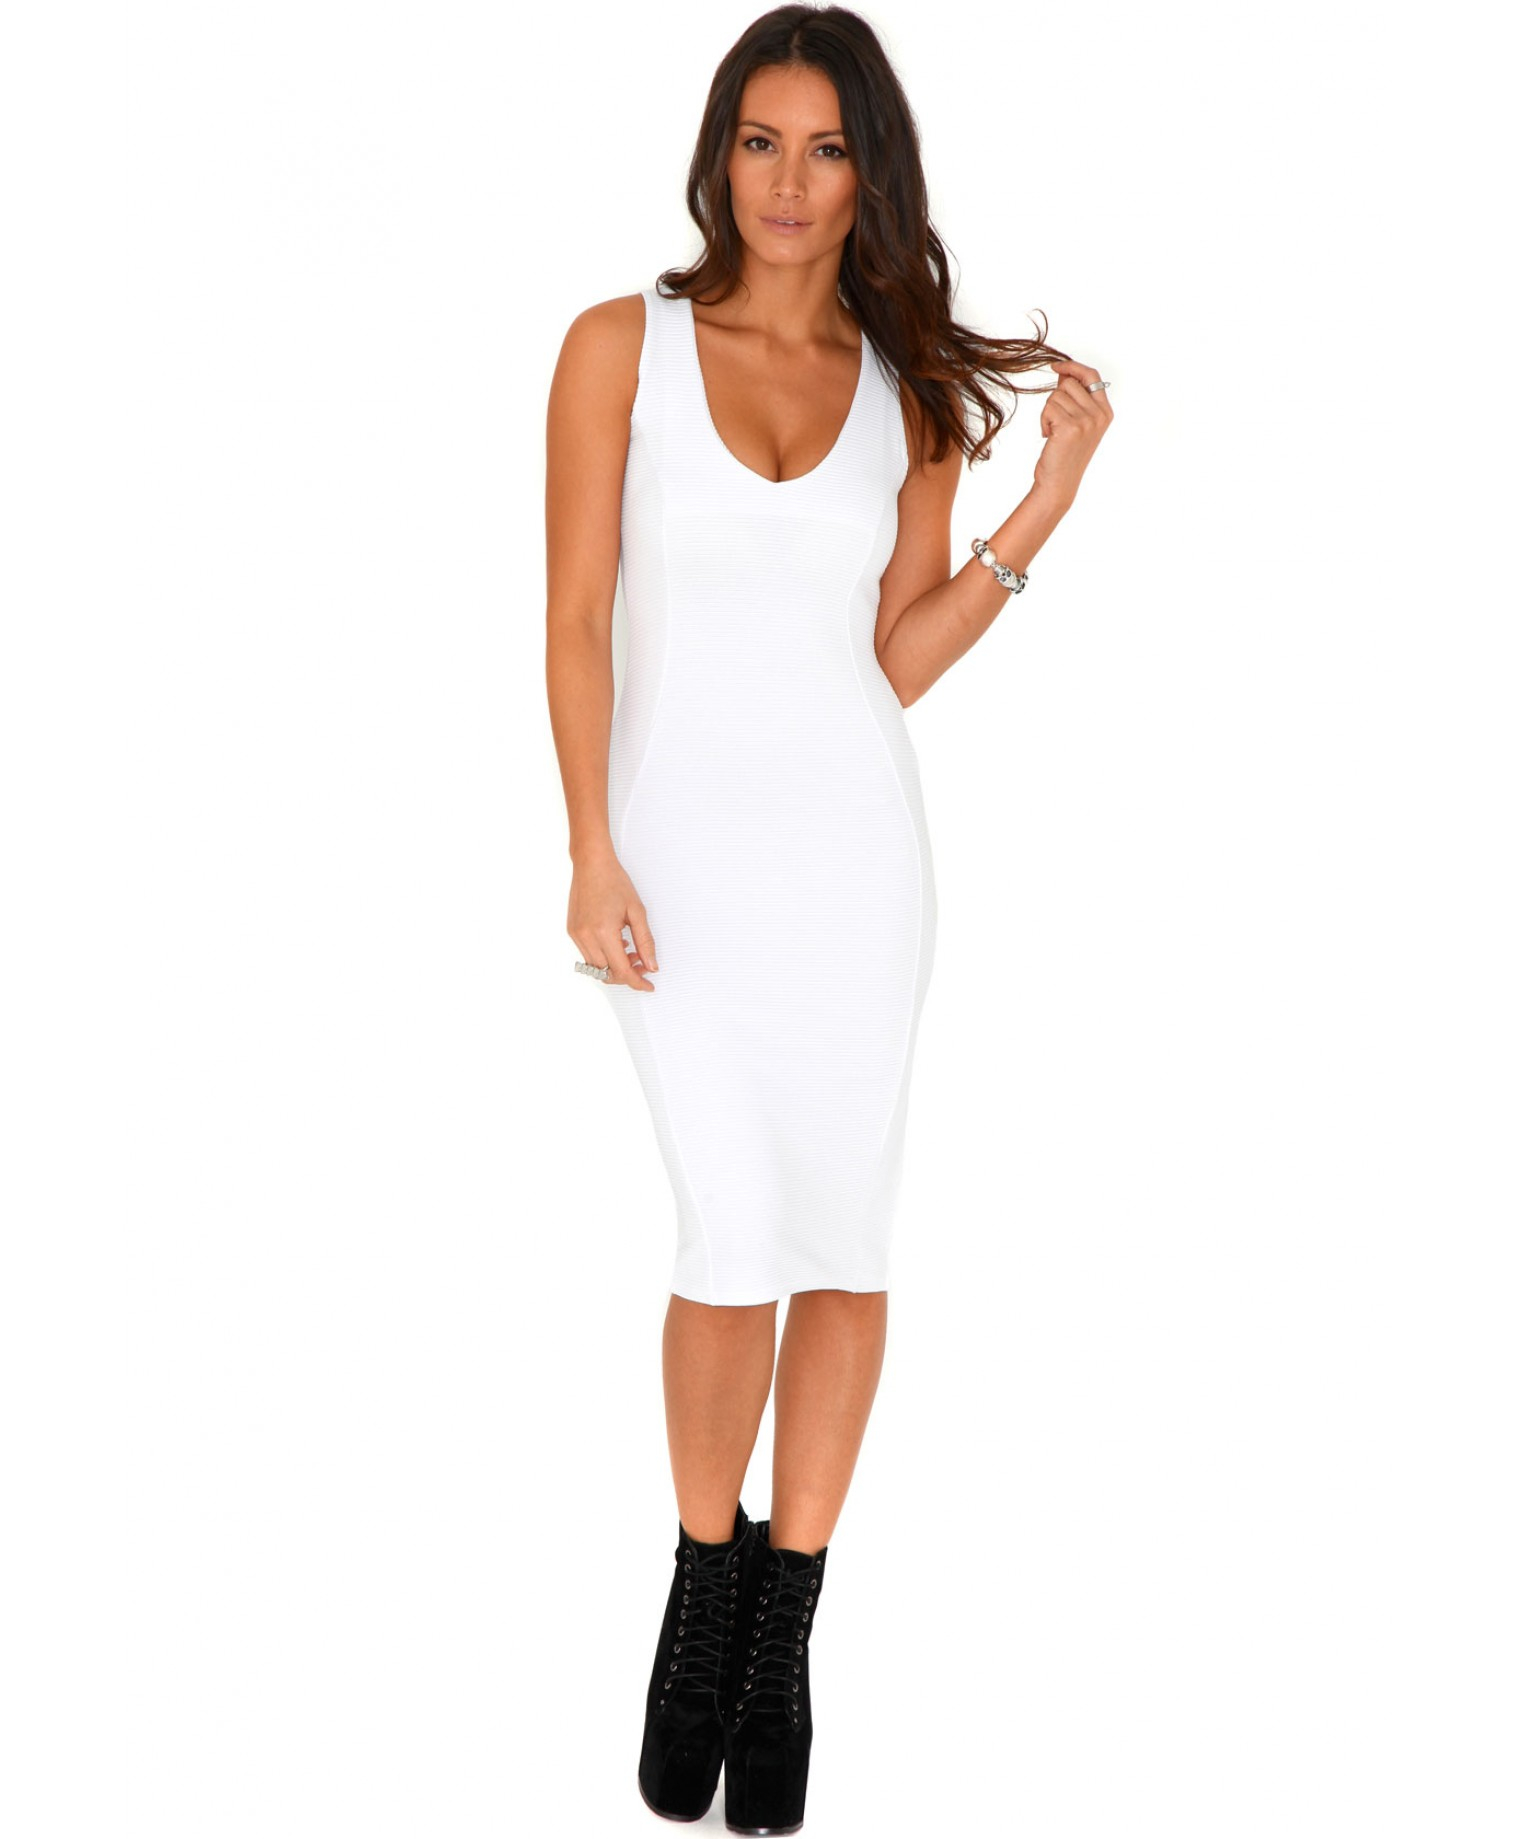 Missguided Ryana Ribbed Bodycon Midi Dress In White in White | Lyst